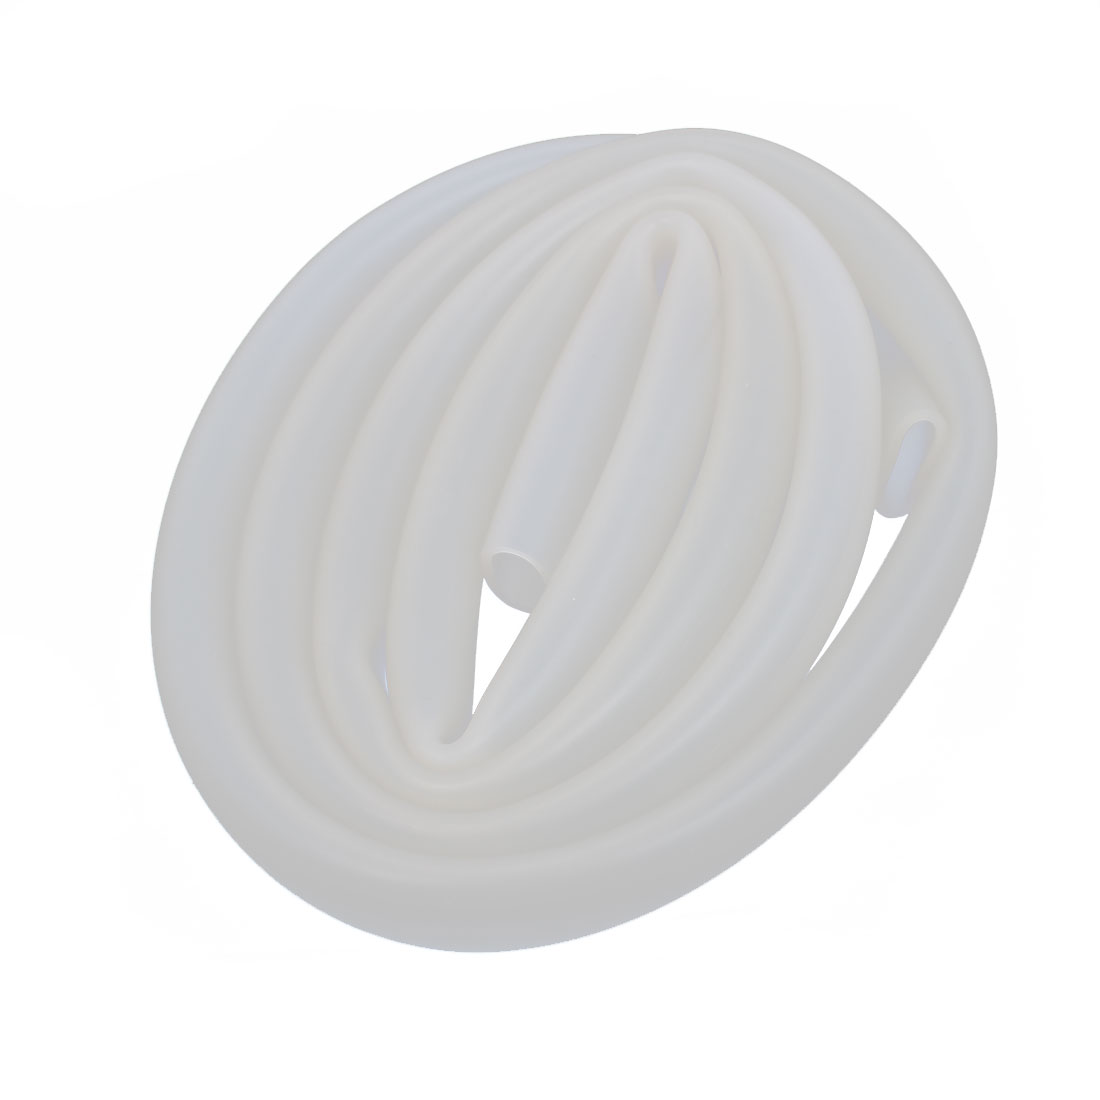 10mm x 12mm Heat Resistant Beige Silicone Tube Water Air Pump Hose 1M Length